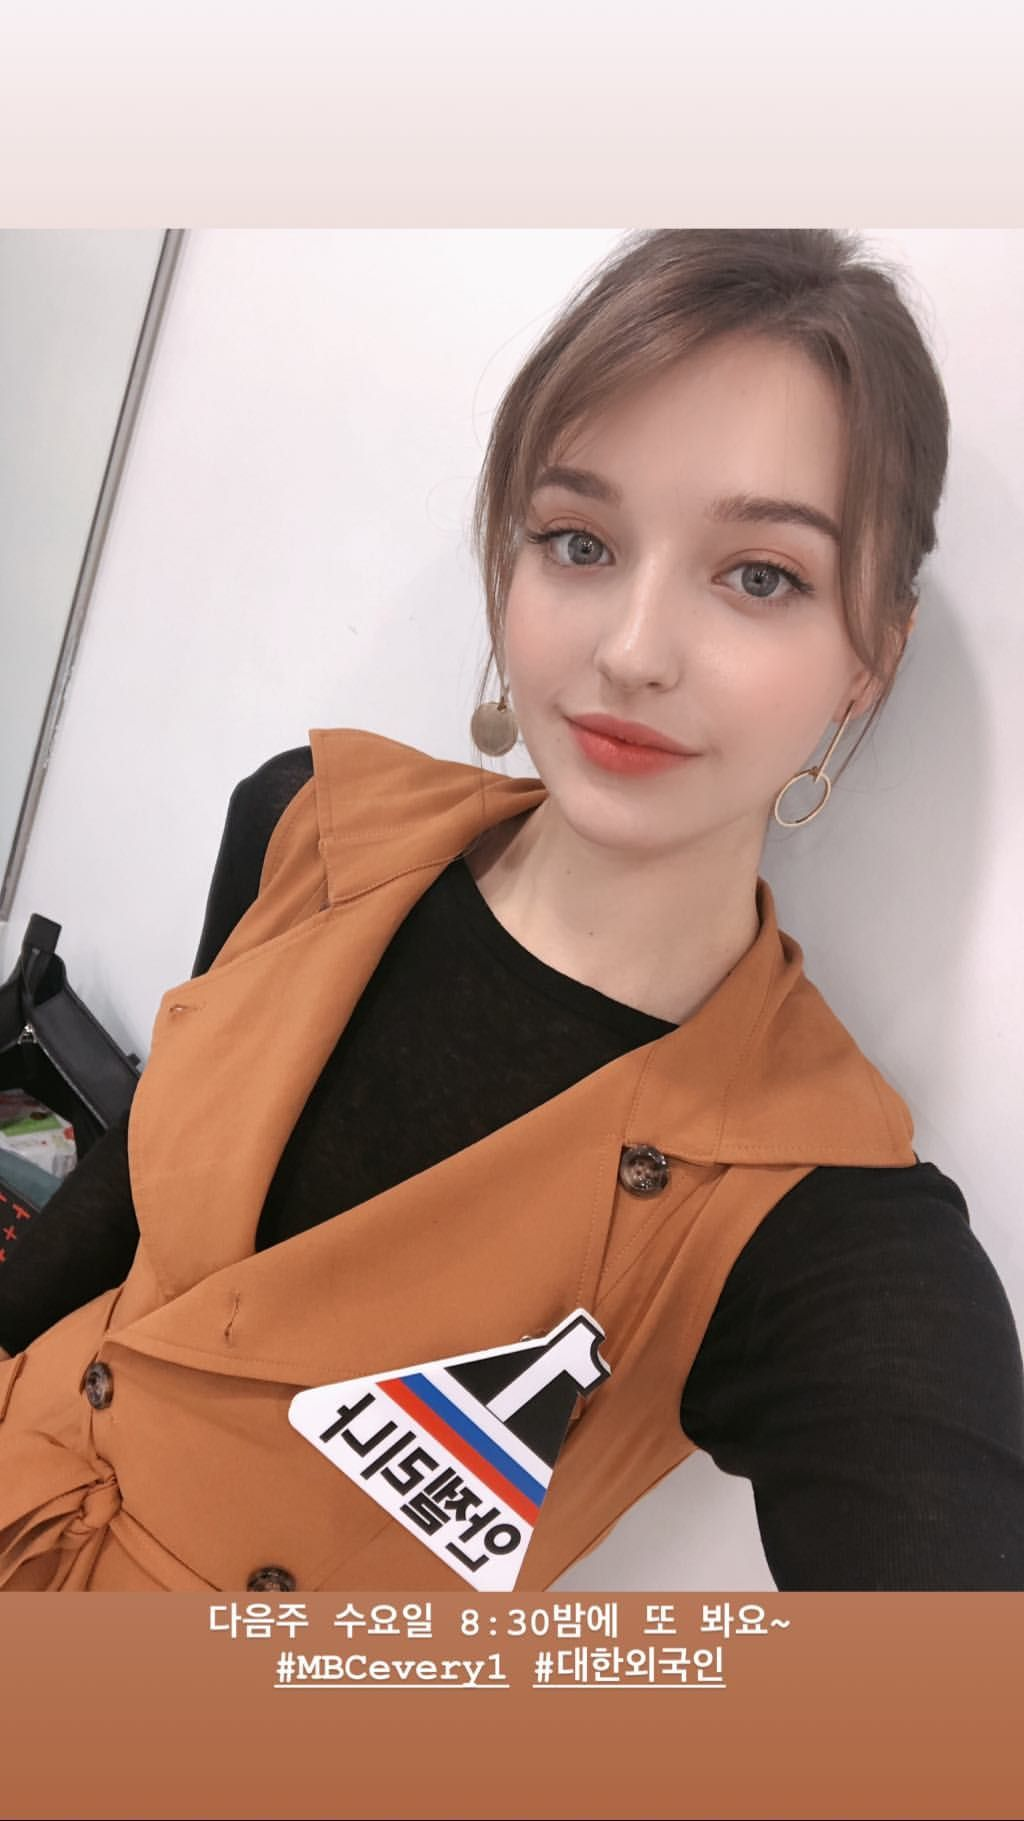 Nose piercing trends 2018  Pin by Goff Panuwat on Angelina Danilova  in   Pinterest